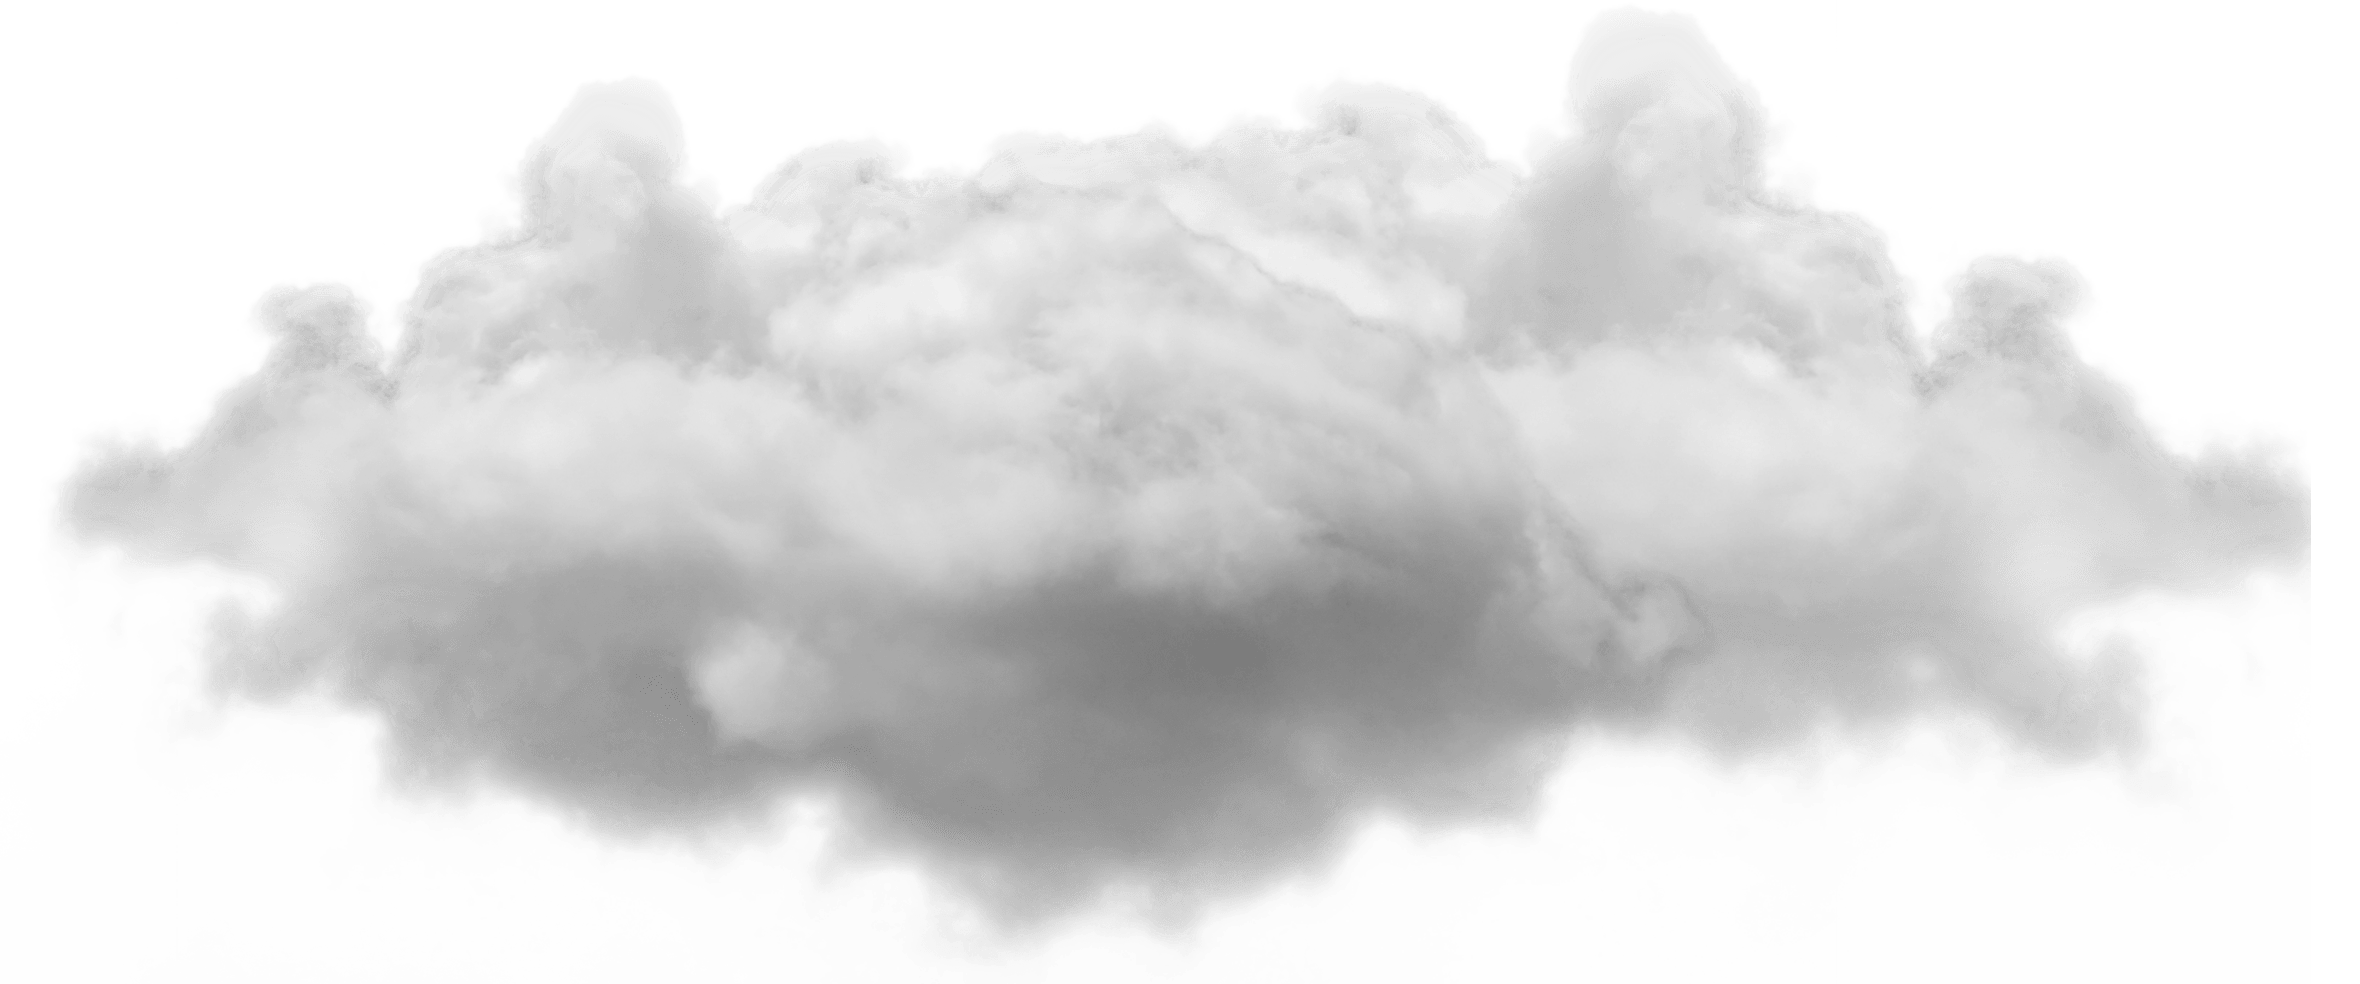 Small Single Cloud PNG Image